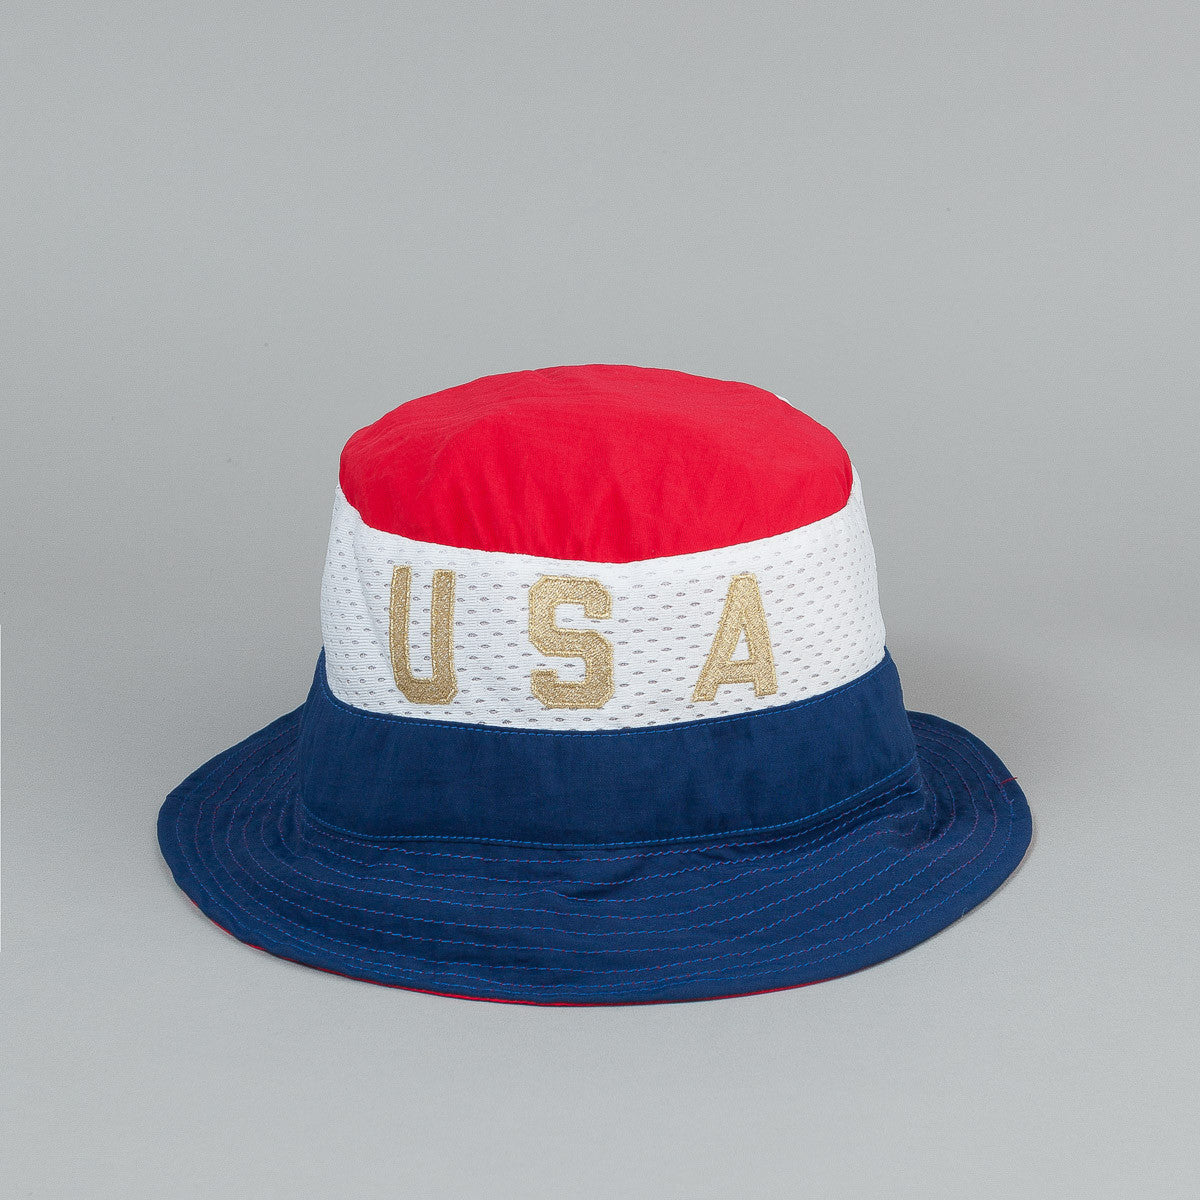 The Decades Bicentennial Bucket Hat - Navy / White / Red